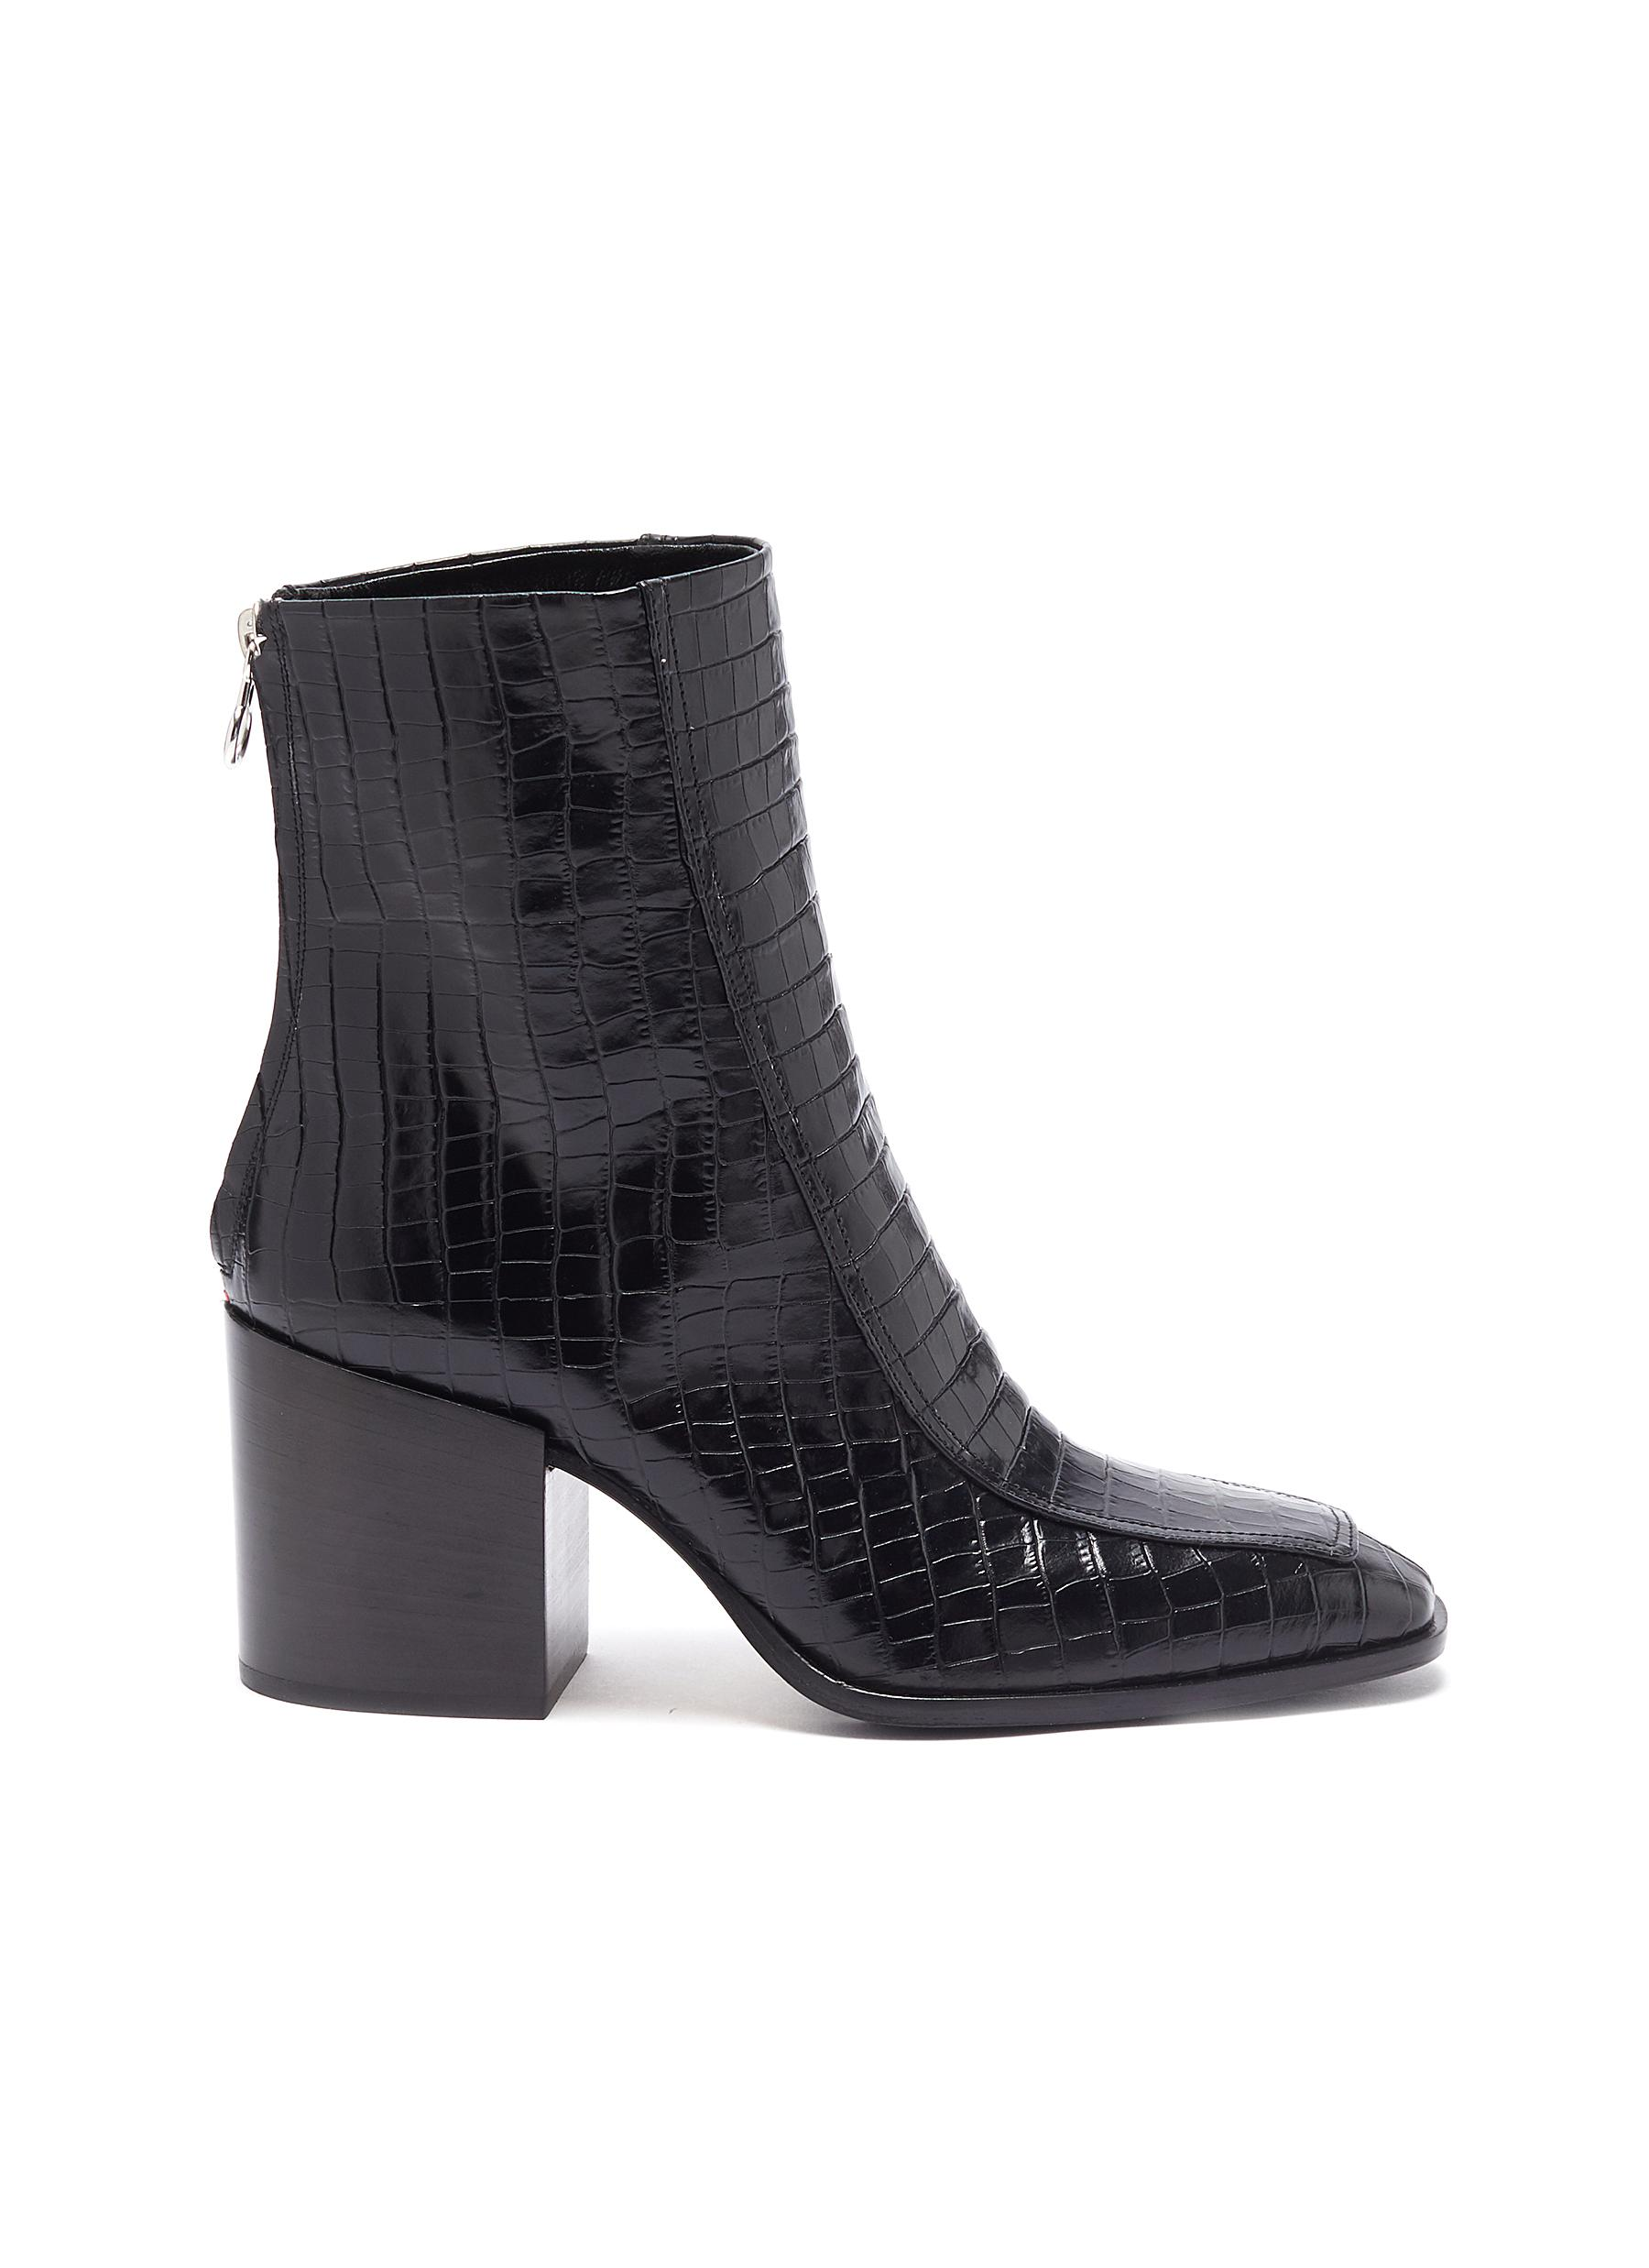 Aeyde Boots Lidia block heel croc embossed leather ankle boots